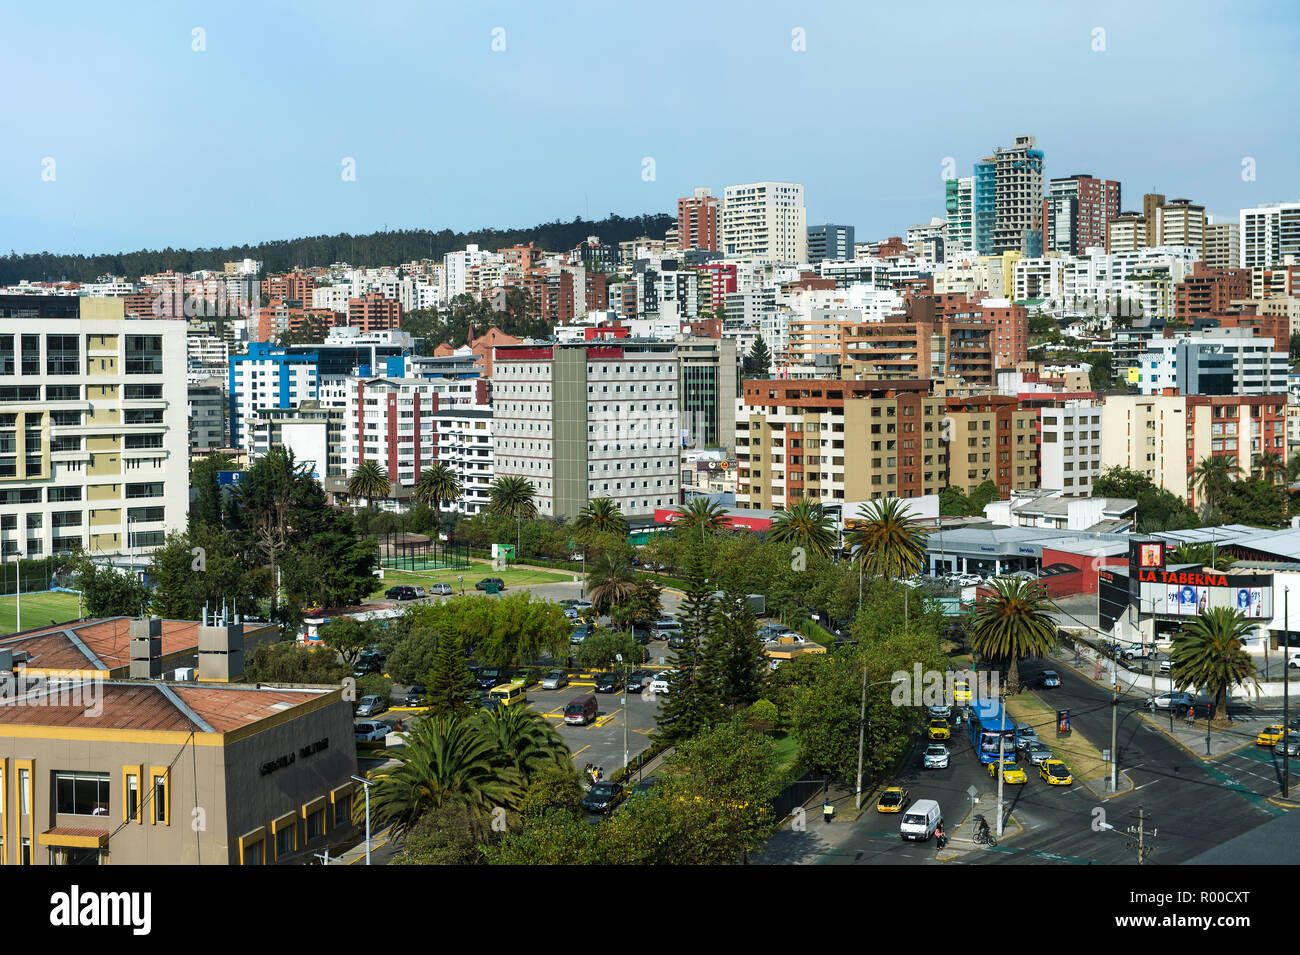 New residential areas in  Quito, capital of Ecuador - Stock Image